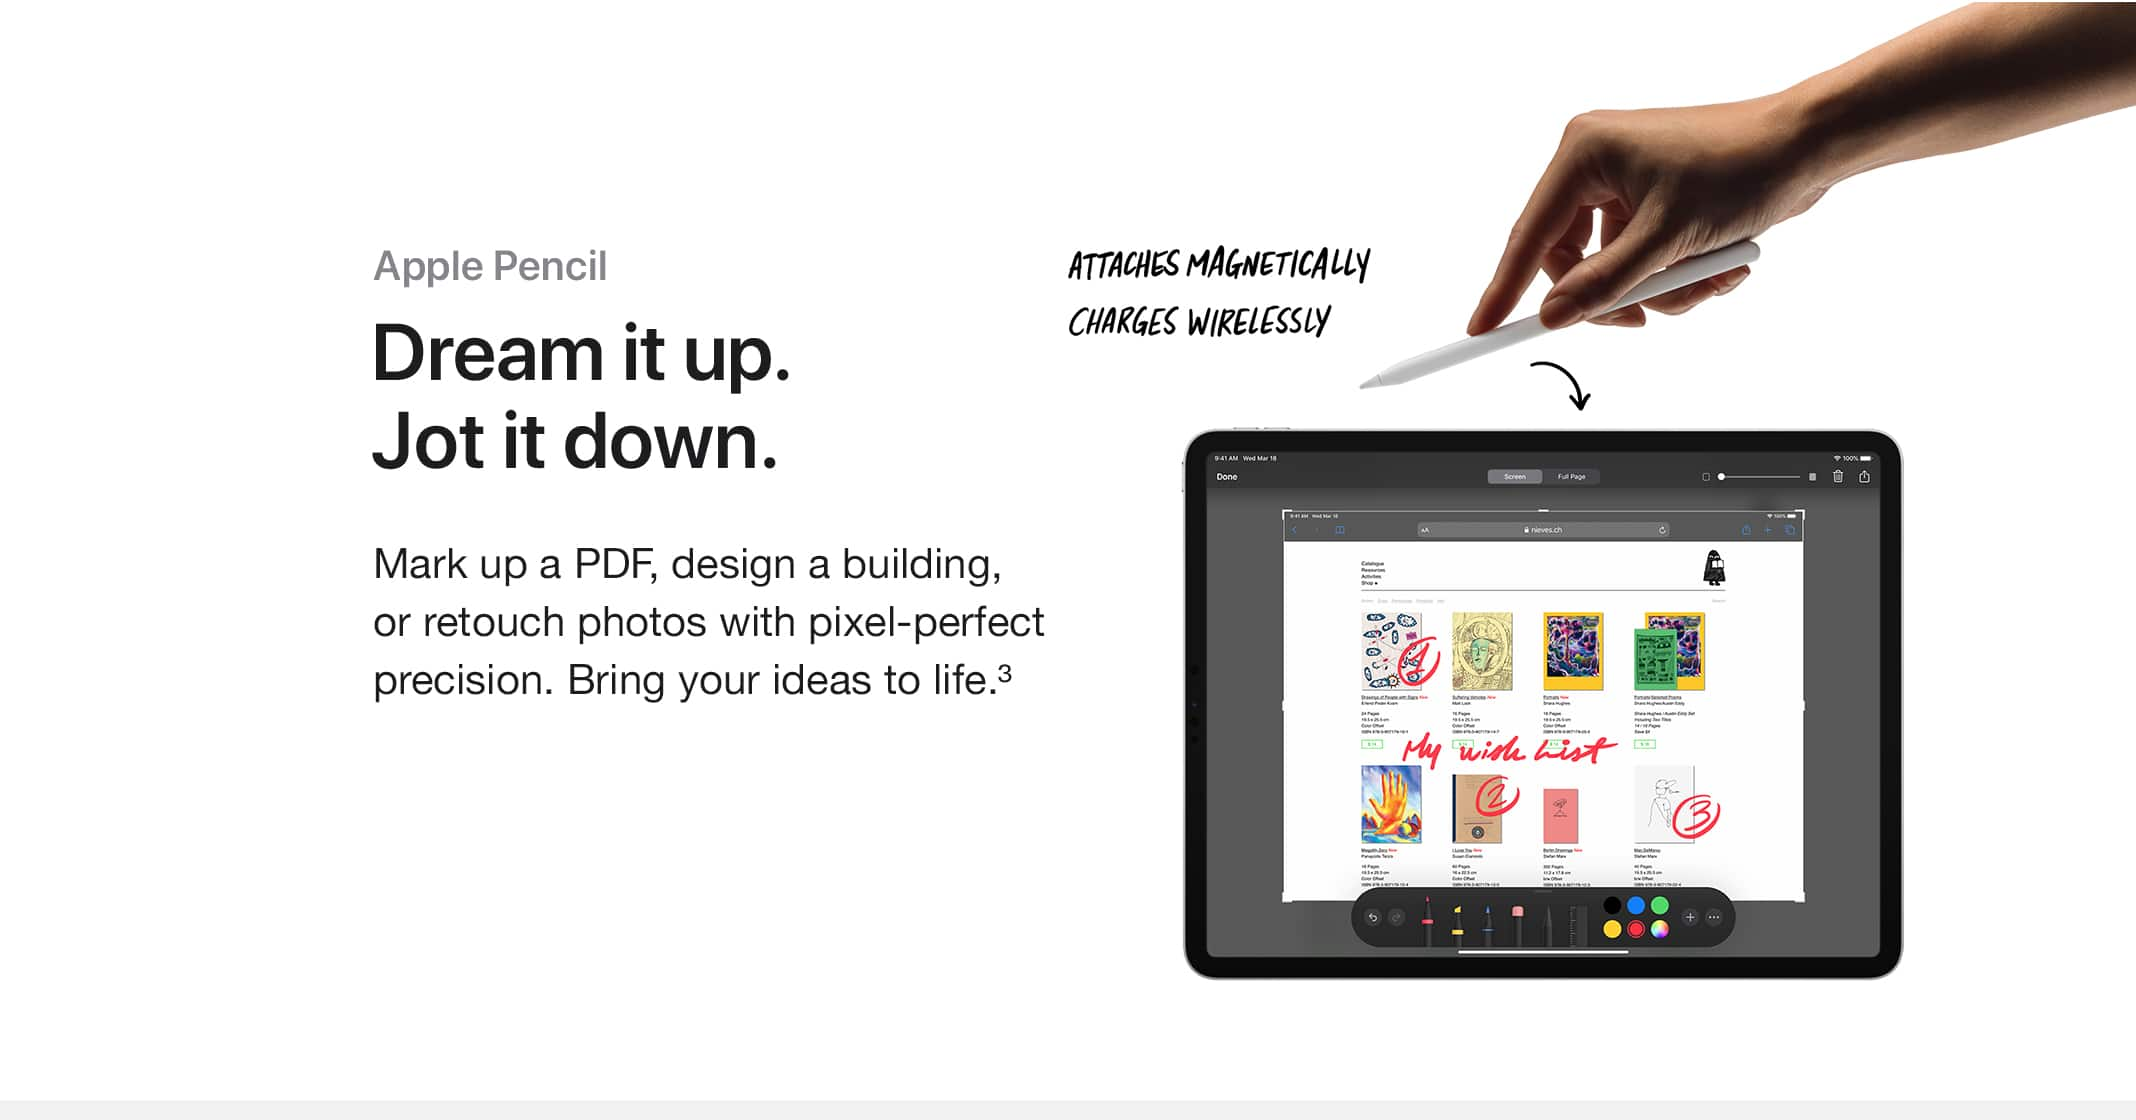 Apple Pencil. Dream it up. Jot it down. Mark up a PDF, design a building, or retouch photos with pixel-perfect precision. Bring your ideas to life.(3) ATTACHES MAGNETICALLY, CHARGES WIRELESSLY.